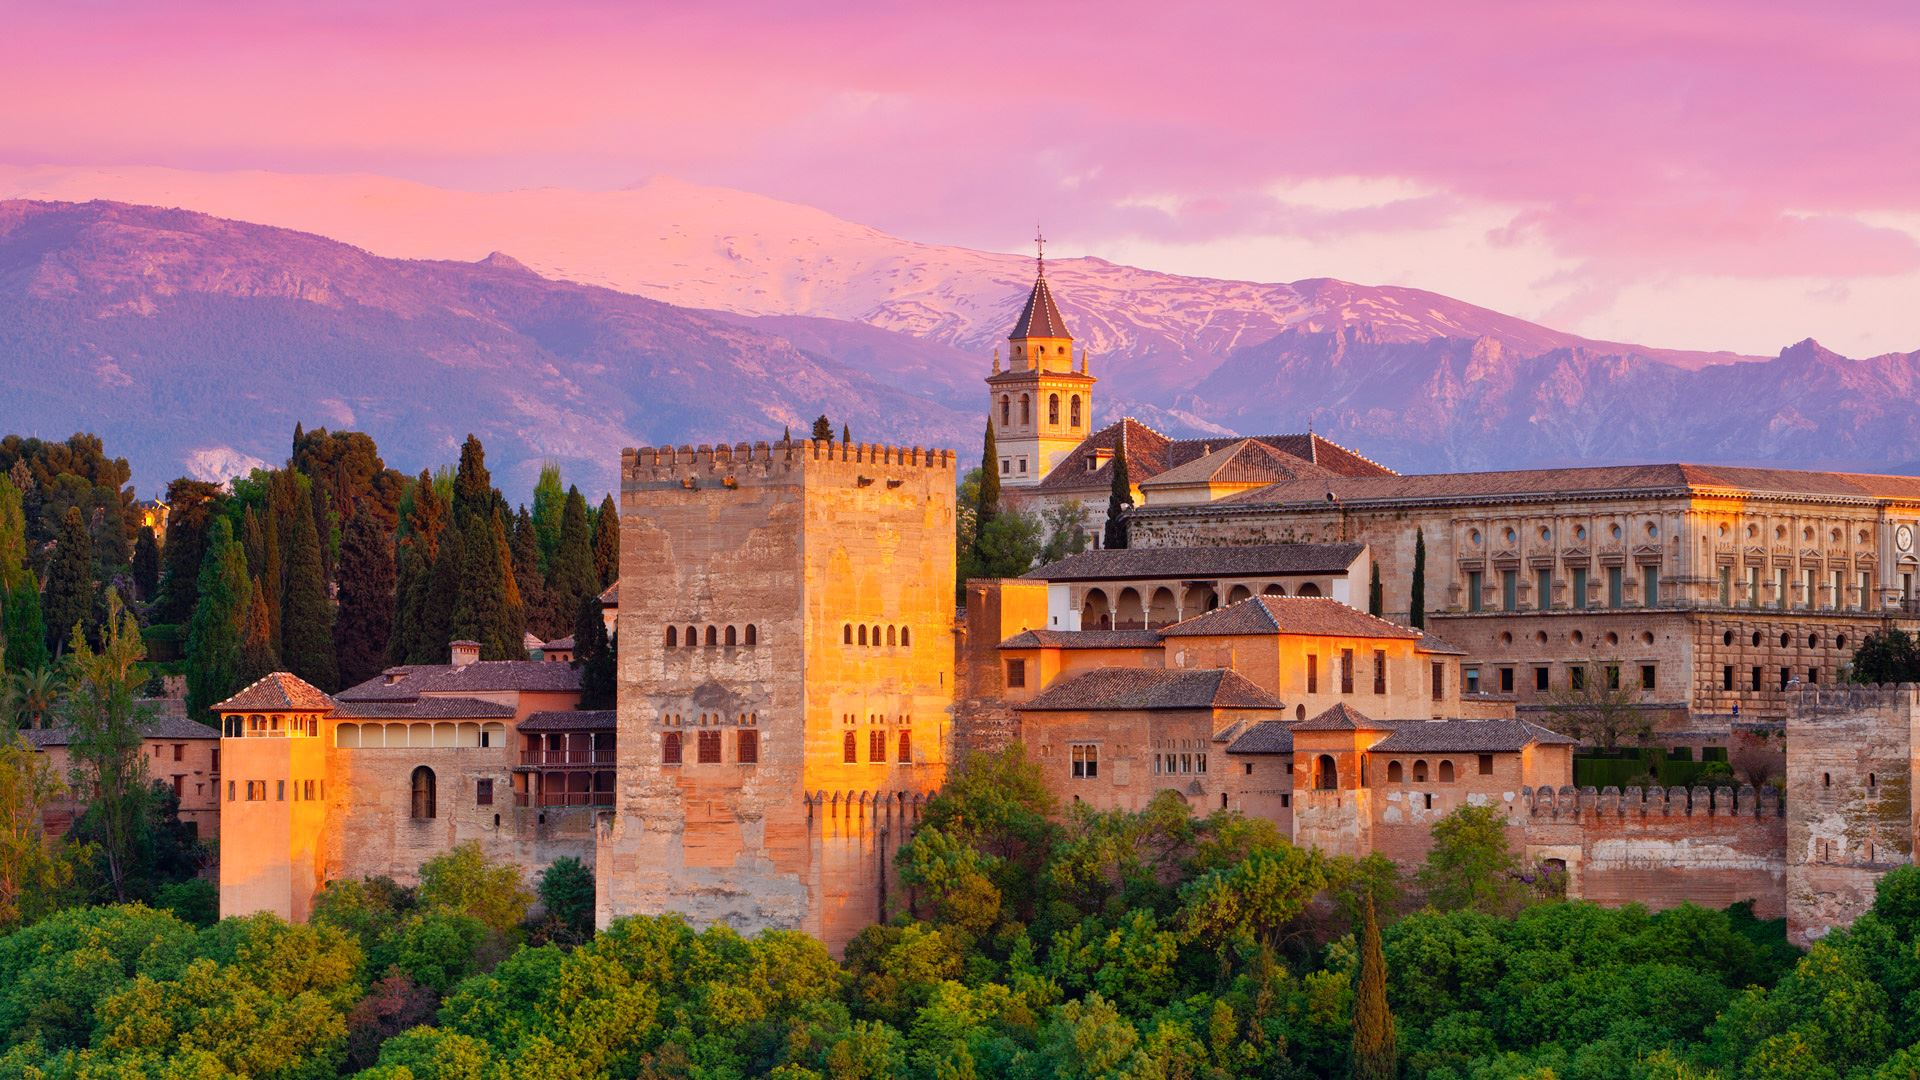 Travel Spotlight: 9 Reasons Why You Should Visit Alhambra in Spain! (6)